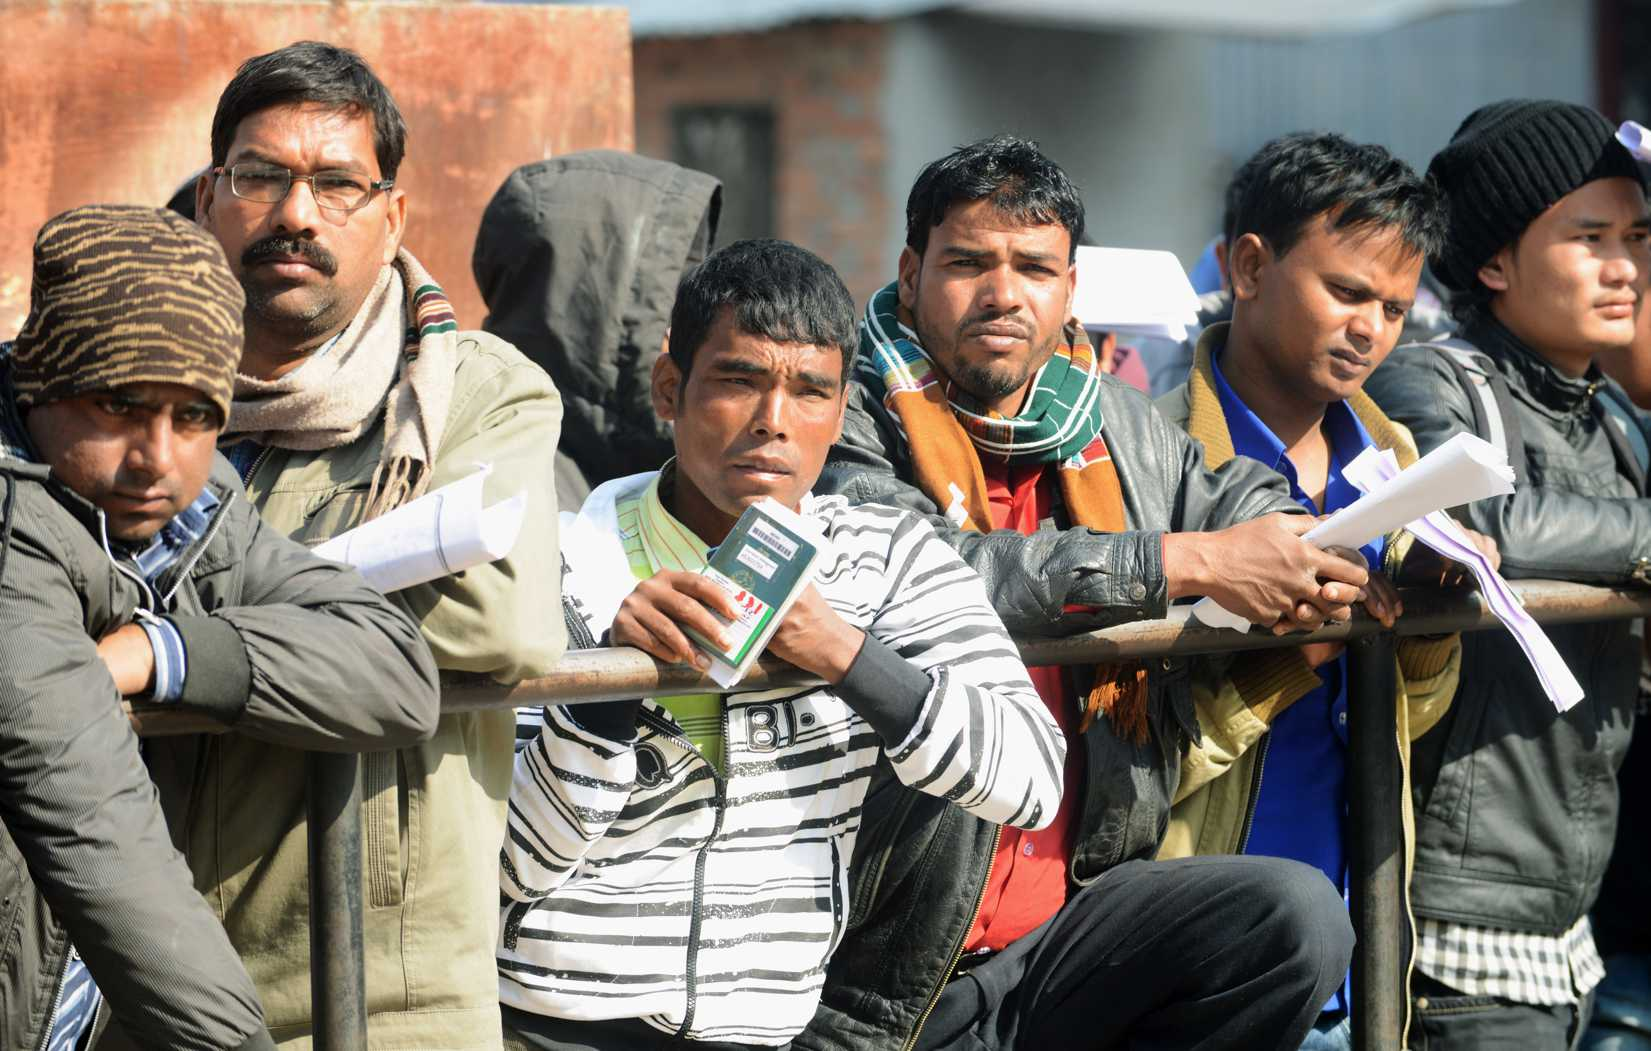 Nepalese migrant workers queue to receive official documents in order to leave Nepal from the Labour department in Kathmandu on January 27, 2014.